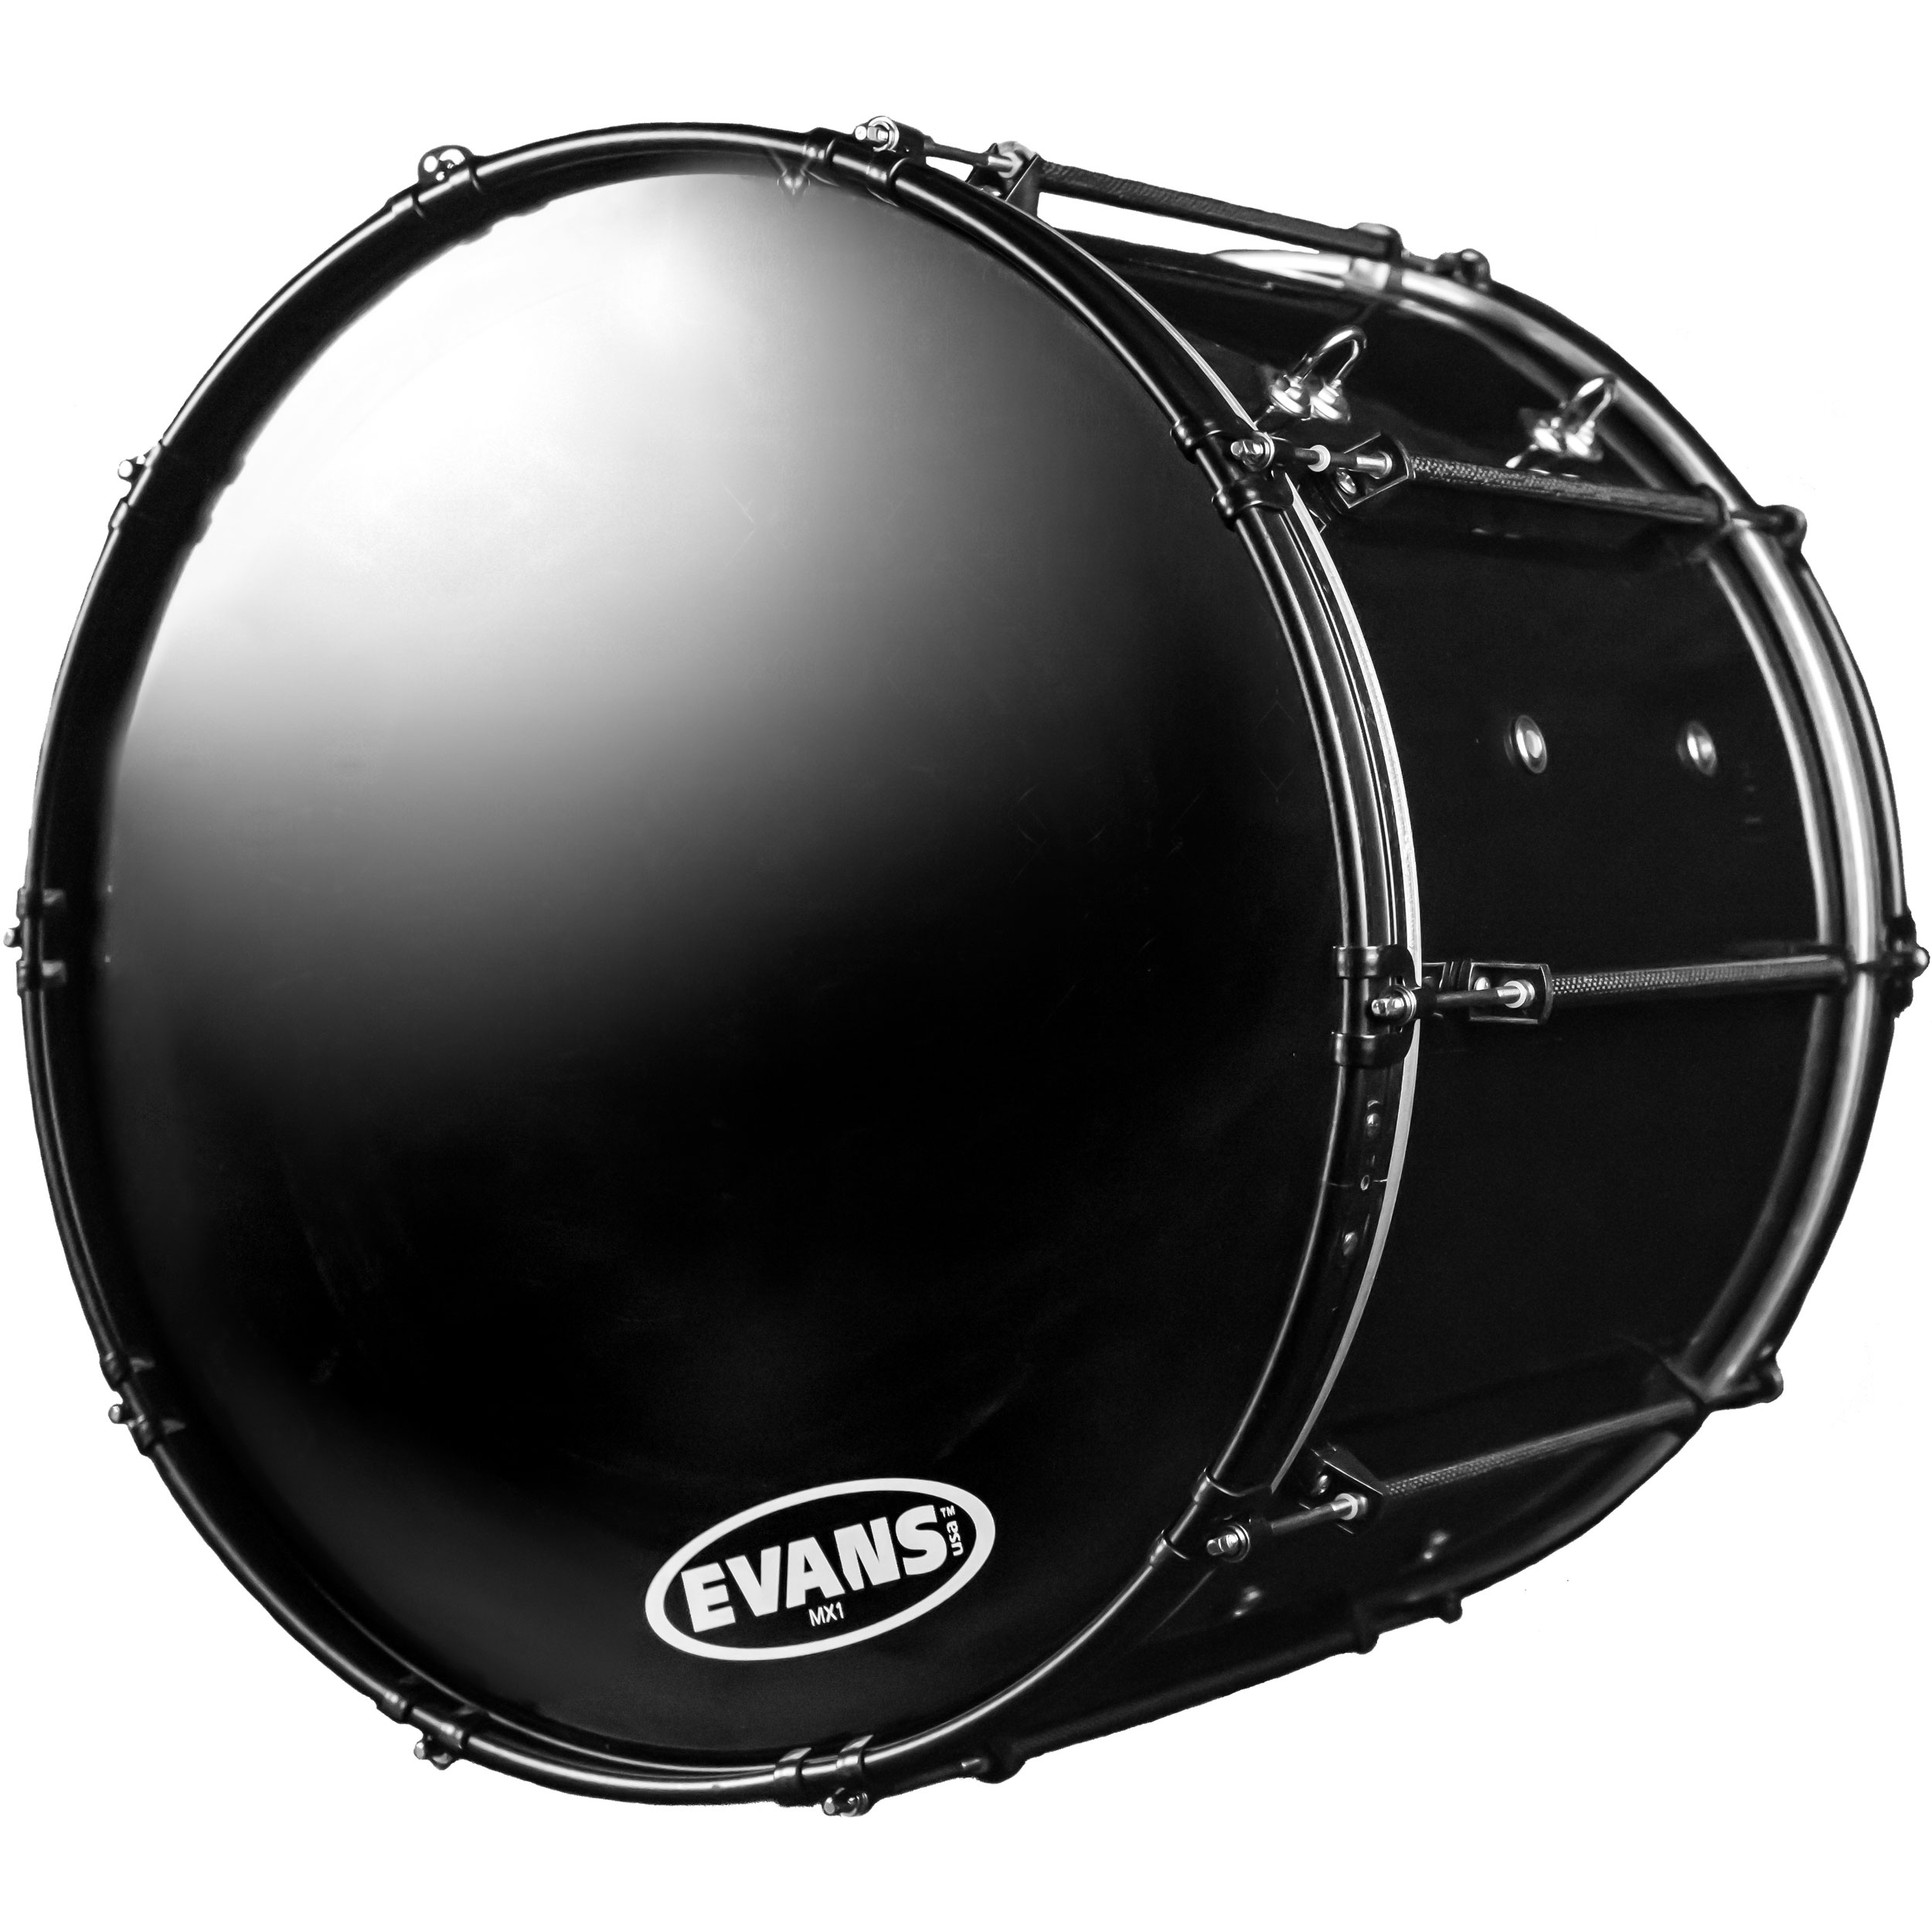 "System Blue 24"" Professional Series Marching Bass Drum"